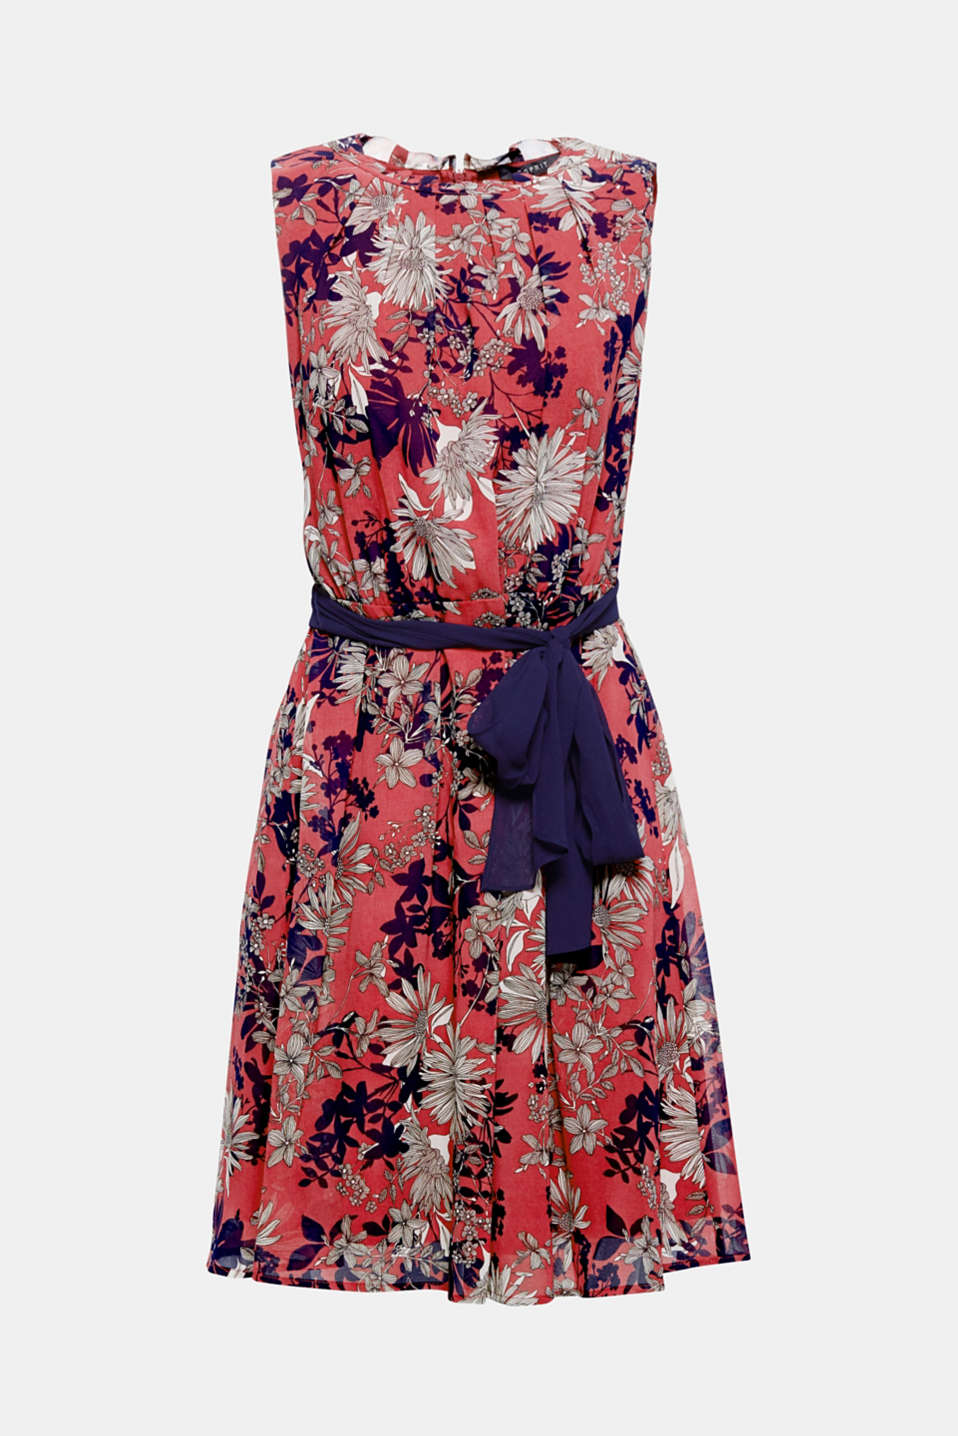 This flowing, skimming dress with a floral print and accenting tie-around belt is sure to turn heads at every party and on gorgeous summer evenings